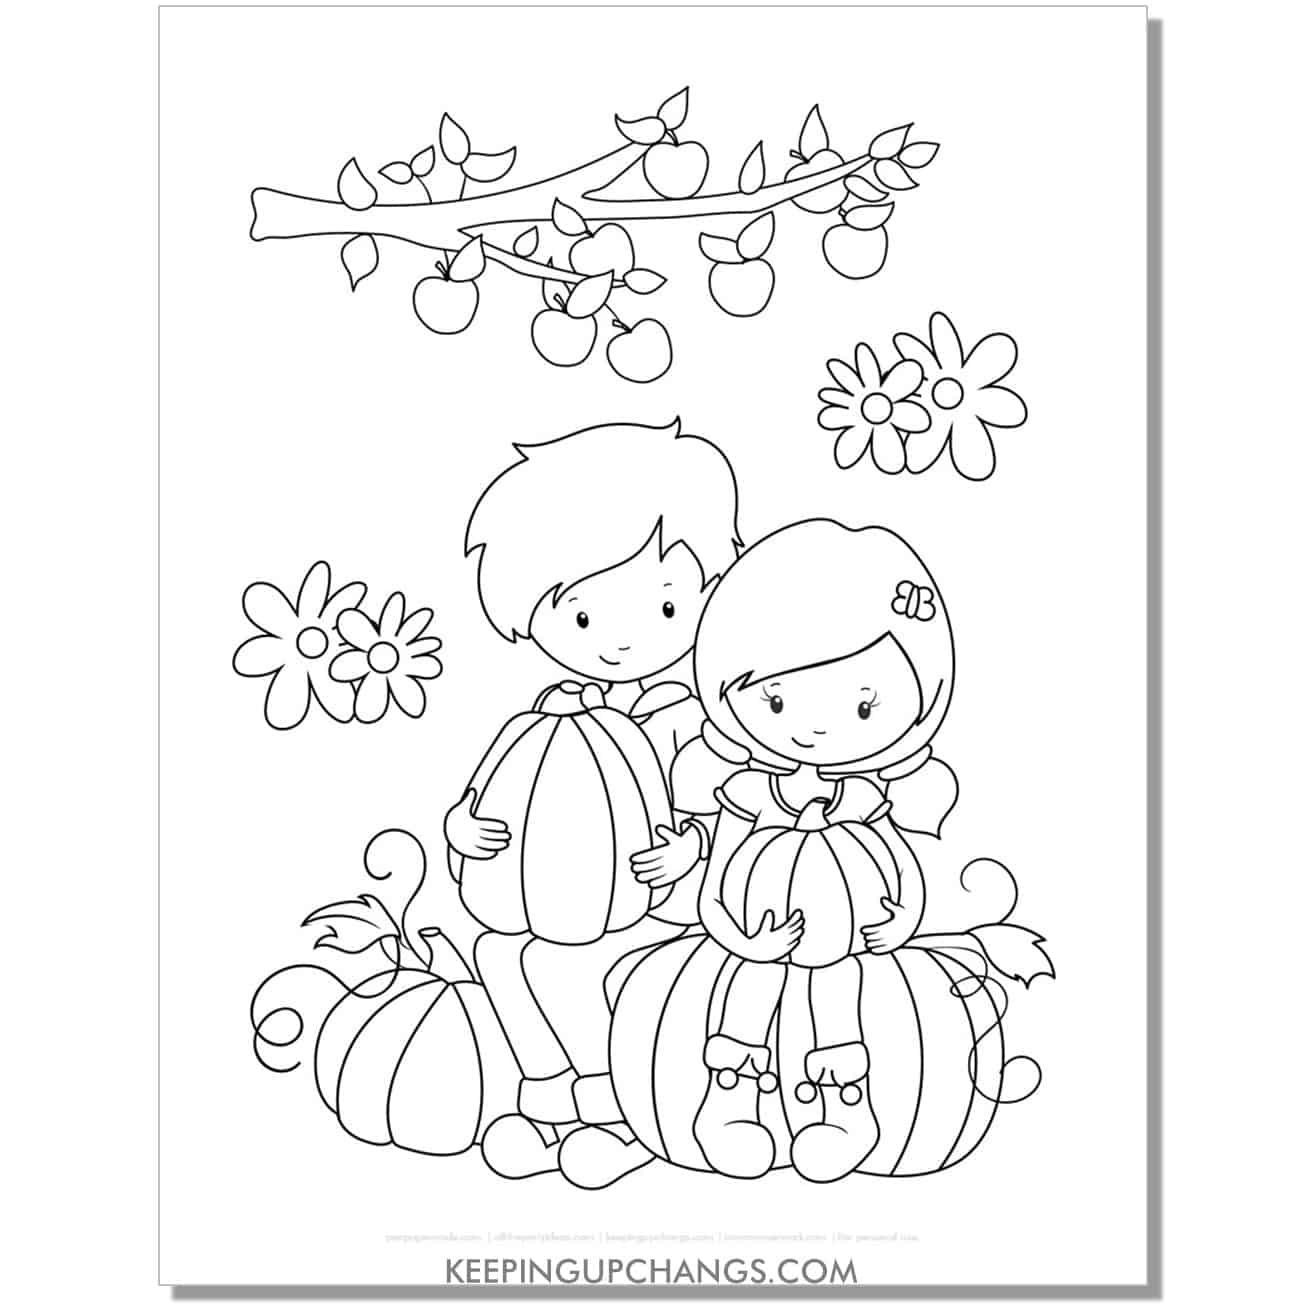 free pumpkin harvest kids coloring page for fall, thanksgiving.